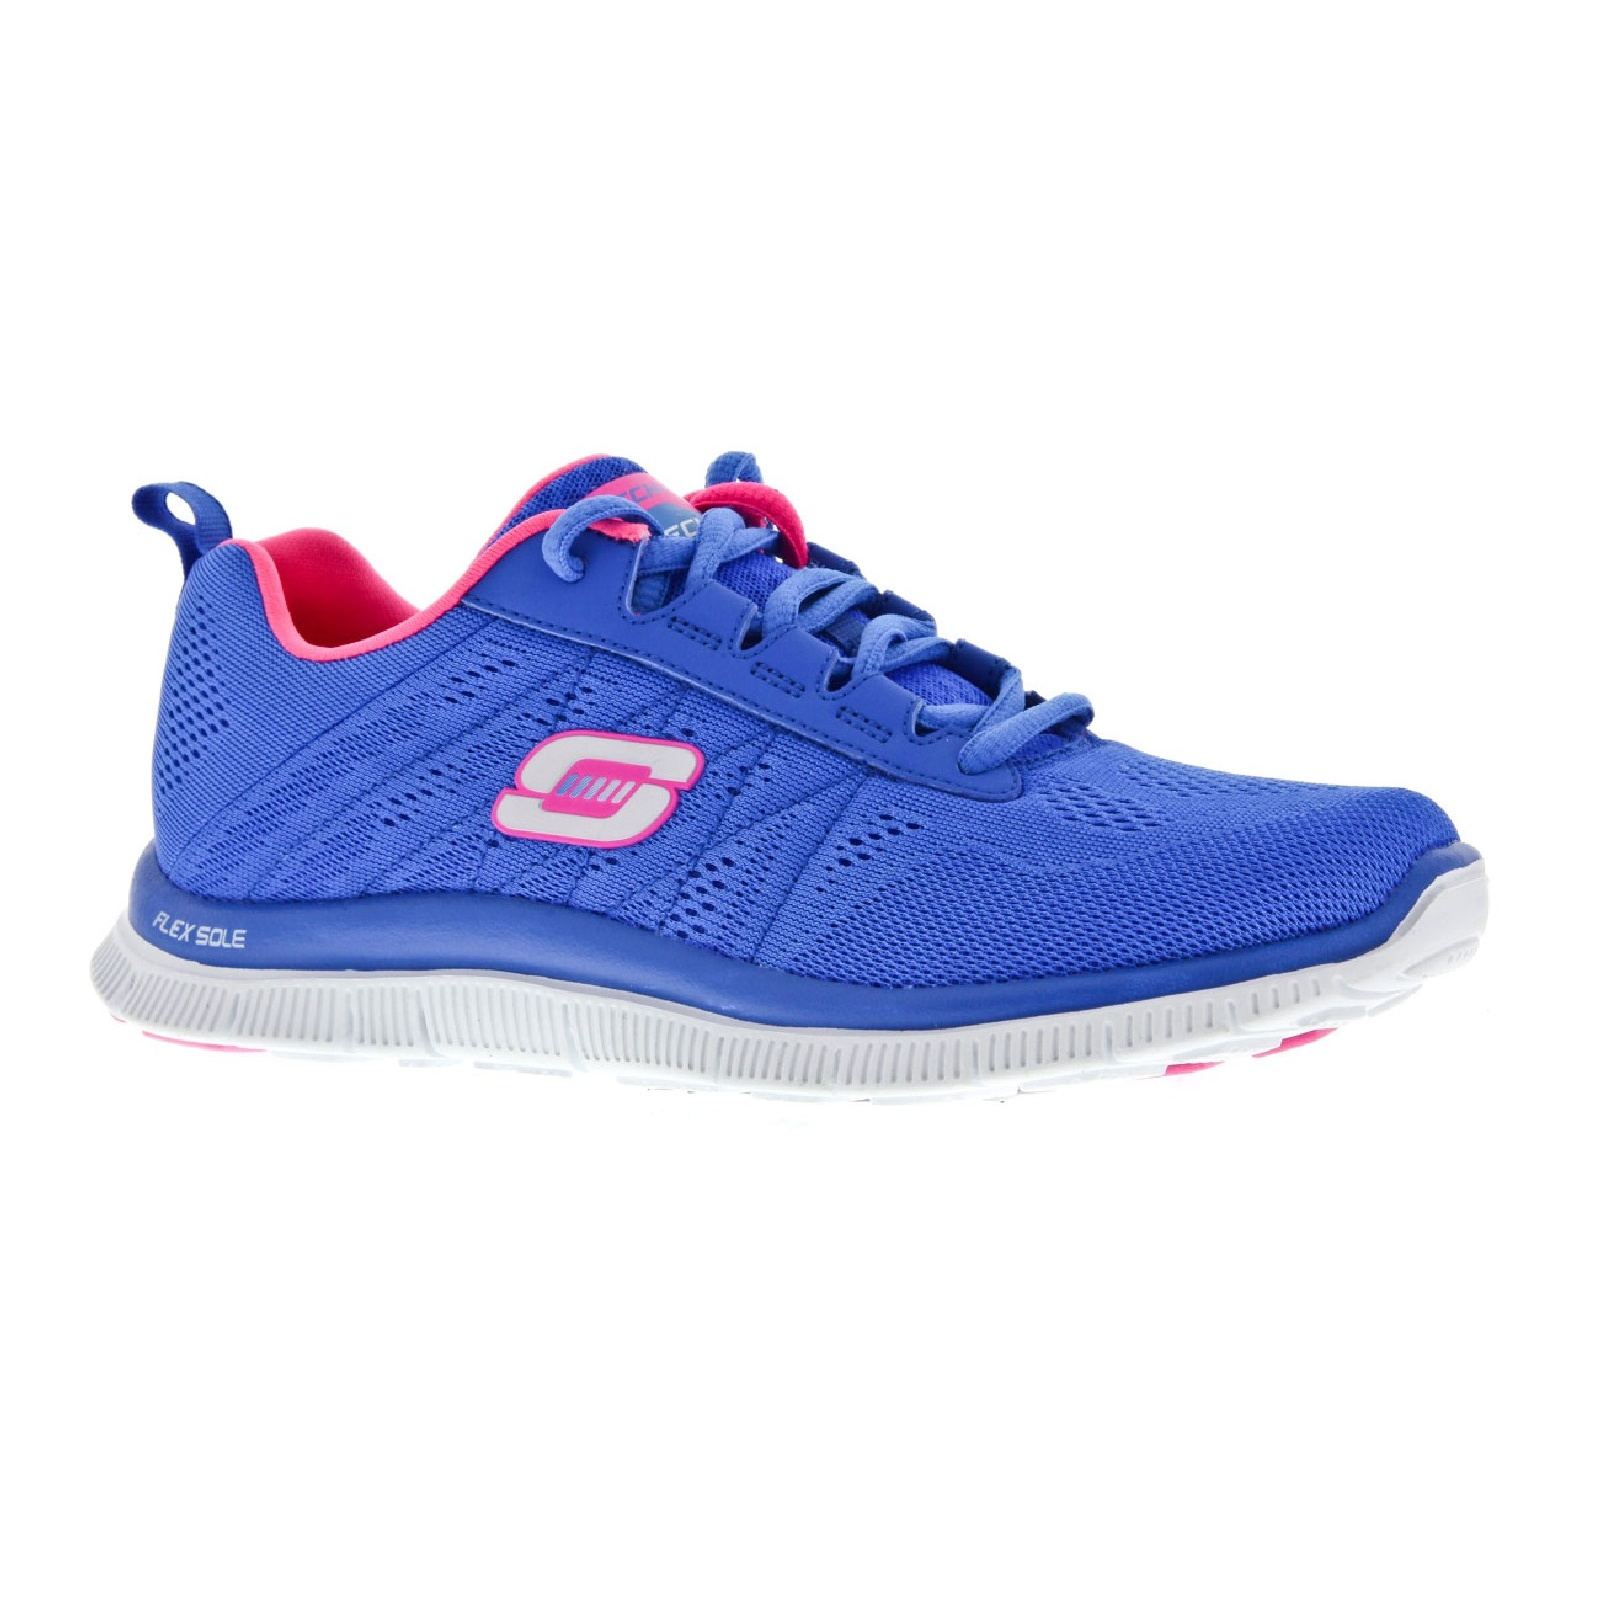 Skechers Womens Mesh Running Shoes